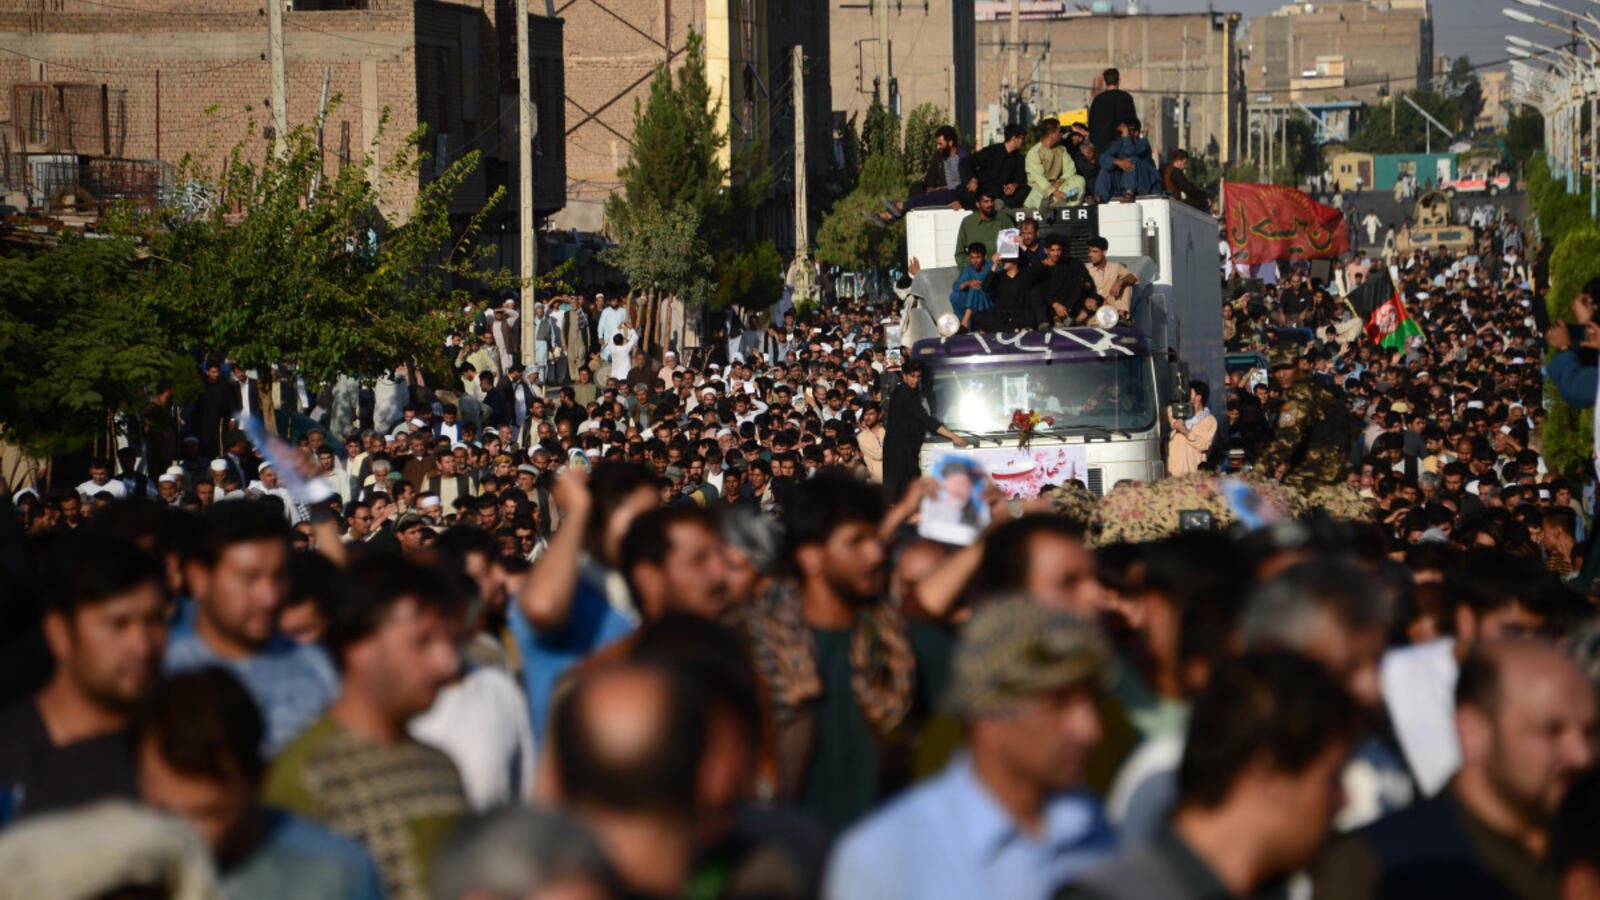 Afghan protesters shout against the Islamic State group following a mosque attack that killed 33 people. (AFP/ File)